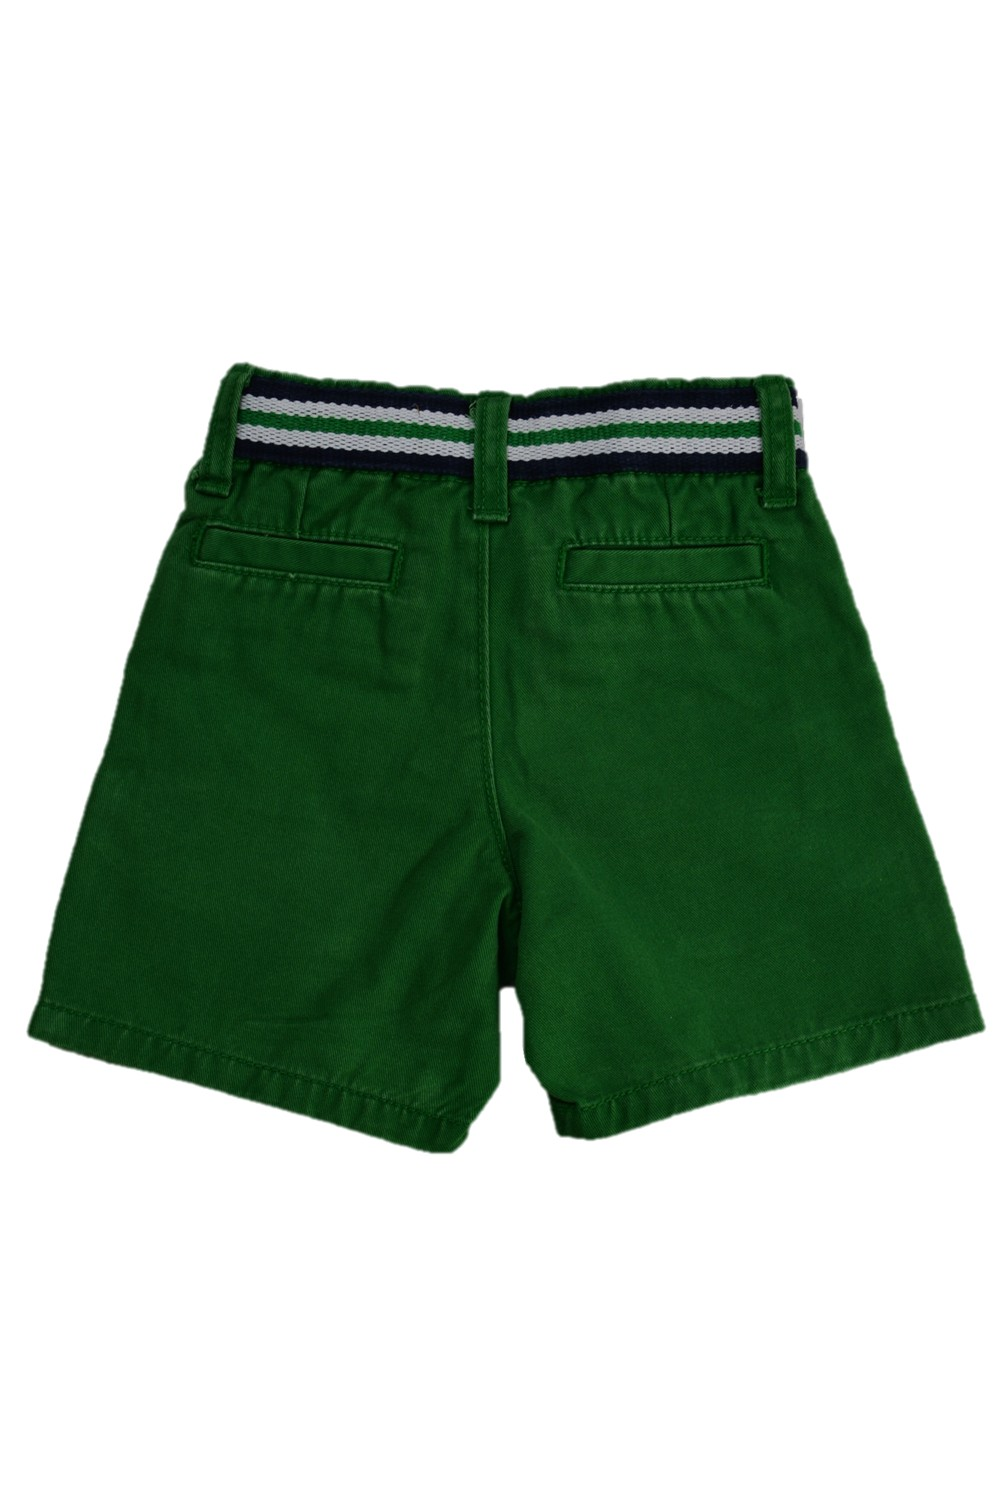 Foto3 - Short Color Jeans | Gymboree